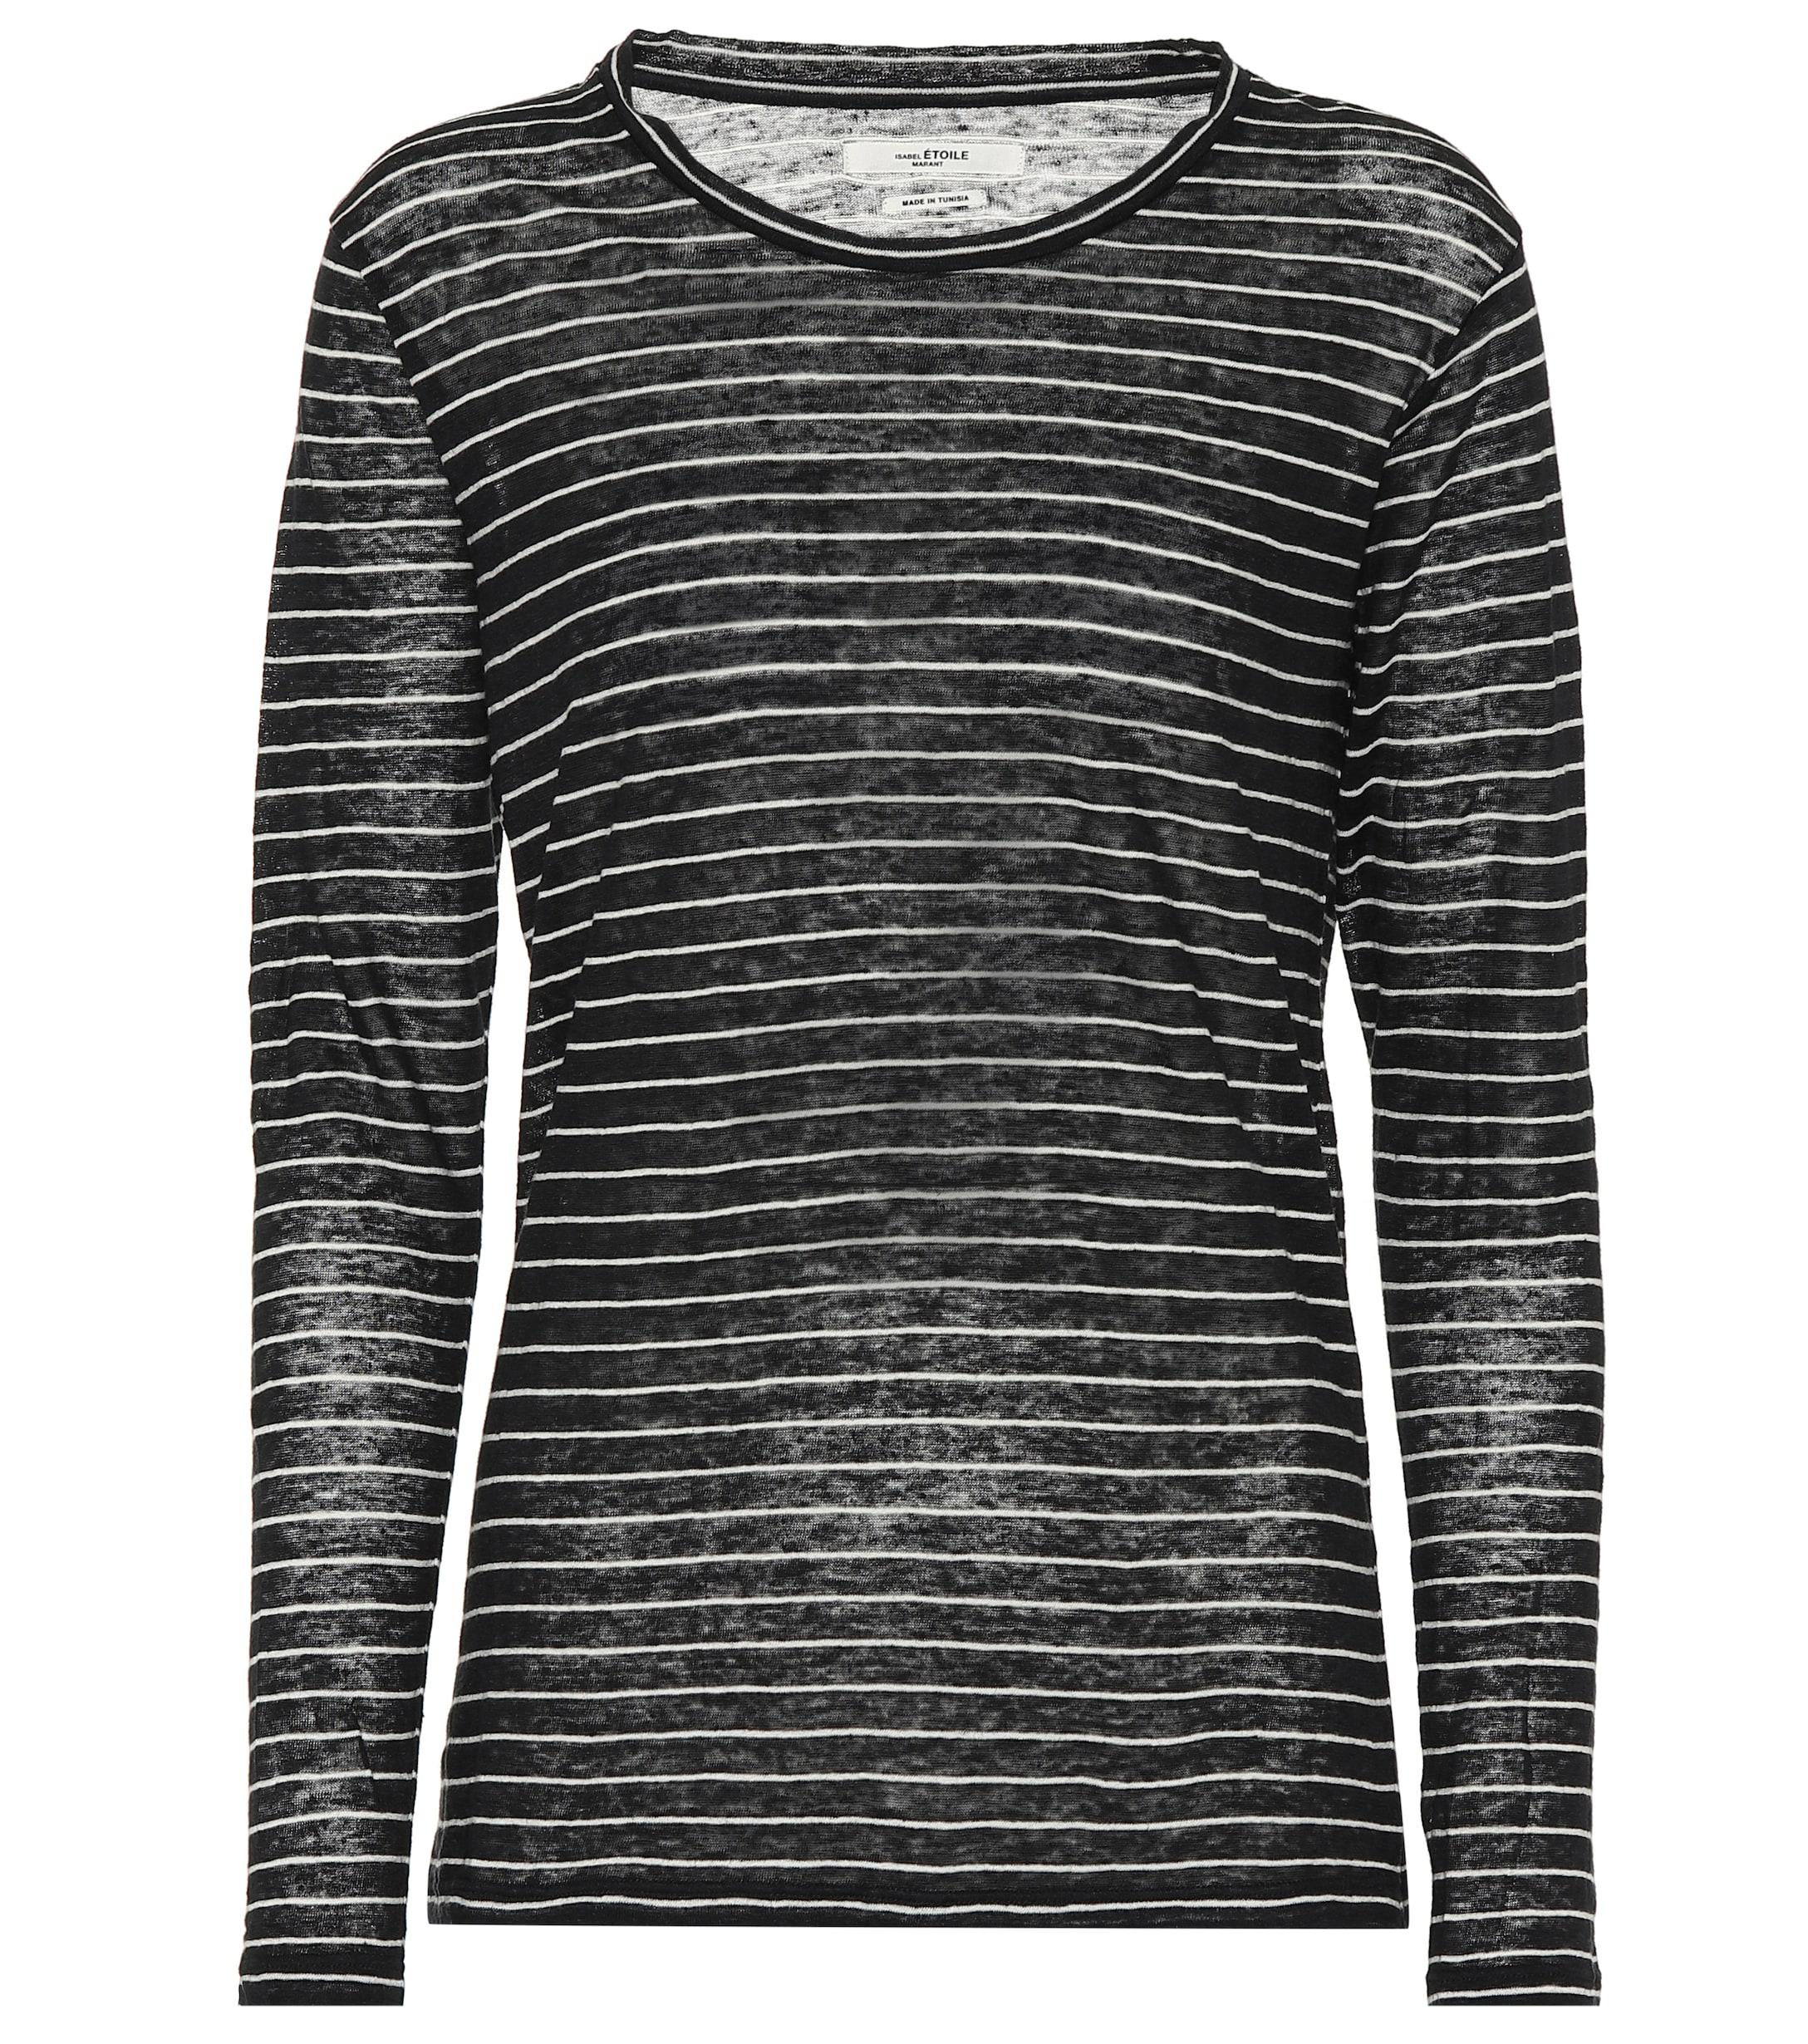 165356ad2d4cc Lyst - Étoile Isabel Marant Kaaron Striped Linen And Cotton Top in ...